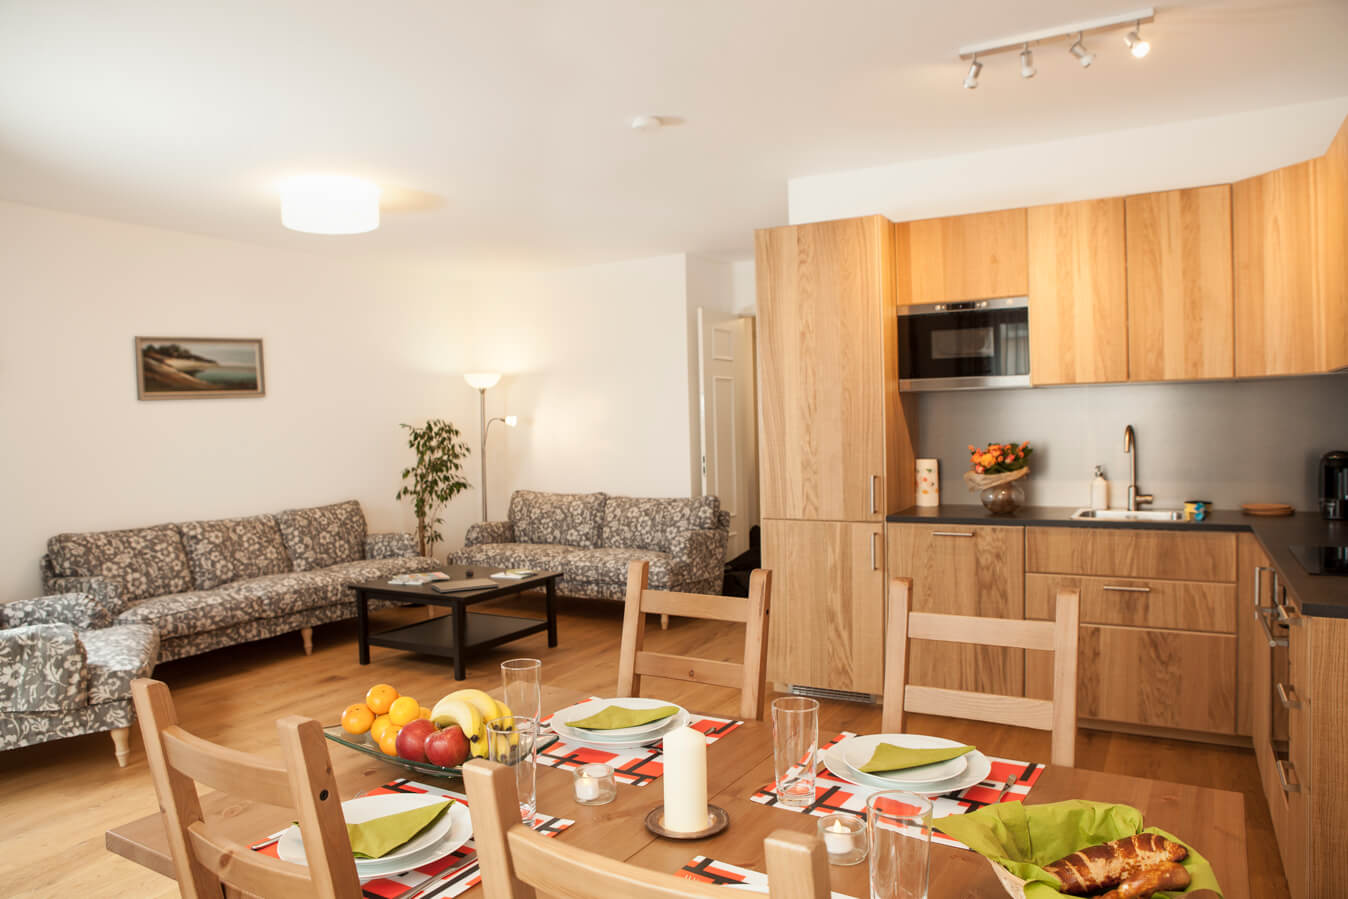 Spacious kitchen area at Töngesgasse Apartments